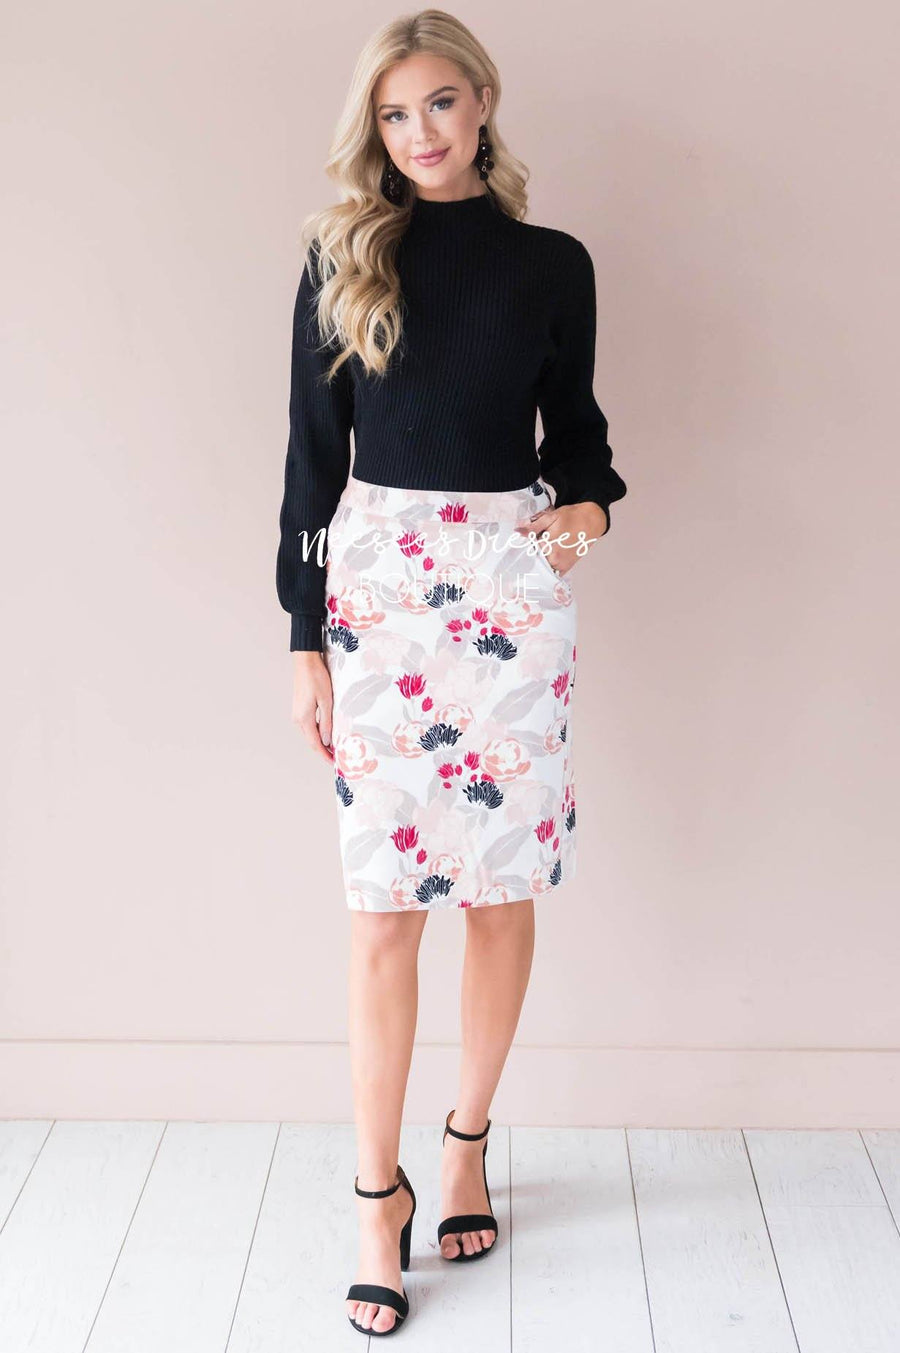 Blooming Beauty Velveteen Pencil Skirt